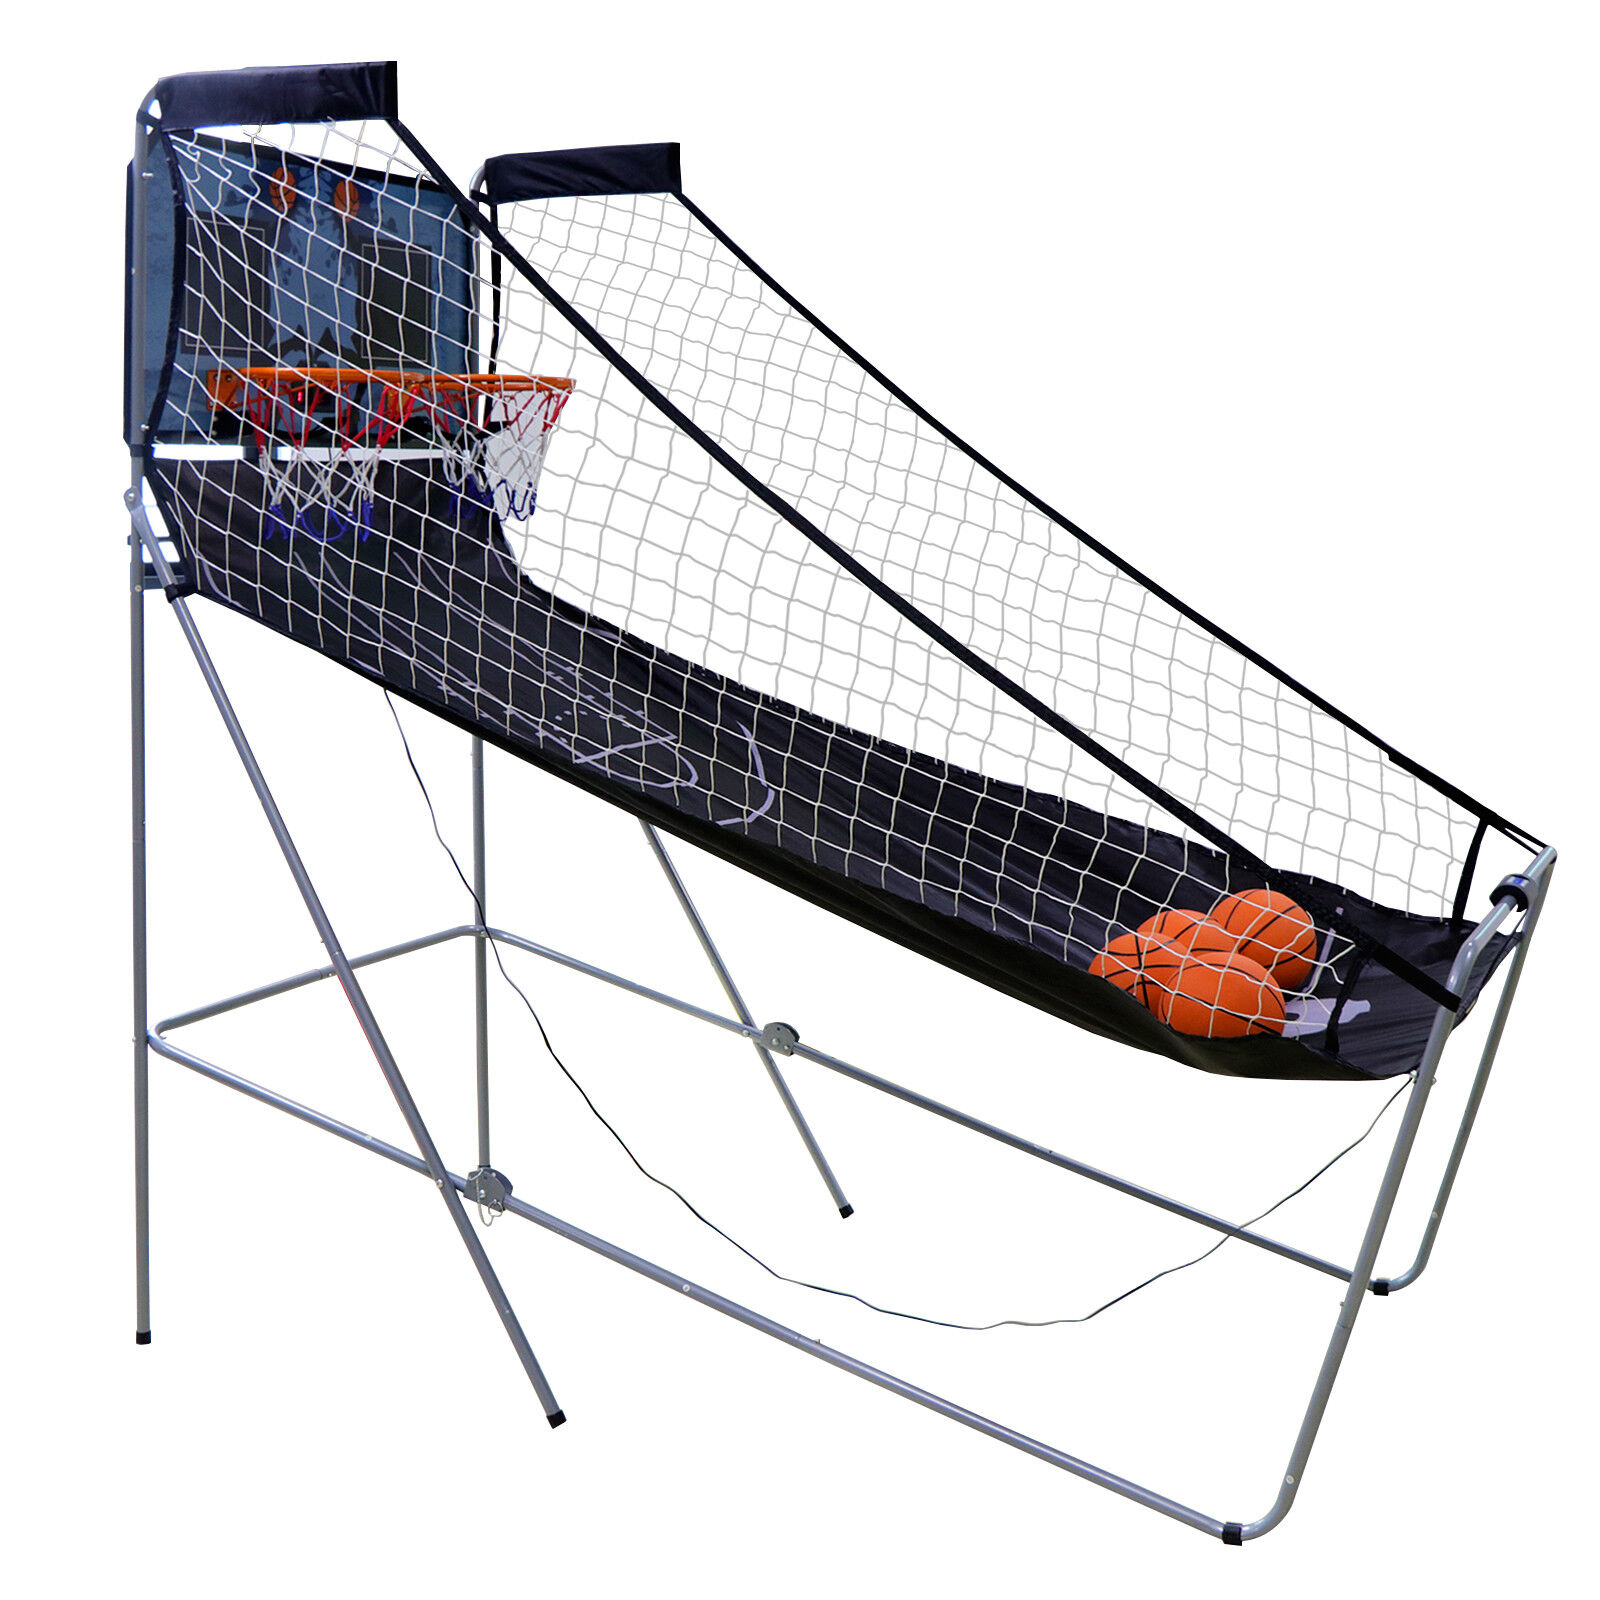 Foldable Indoor Basketball Arcade Game Double Electronic Hoops shot 2 Player Indoor Games